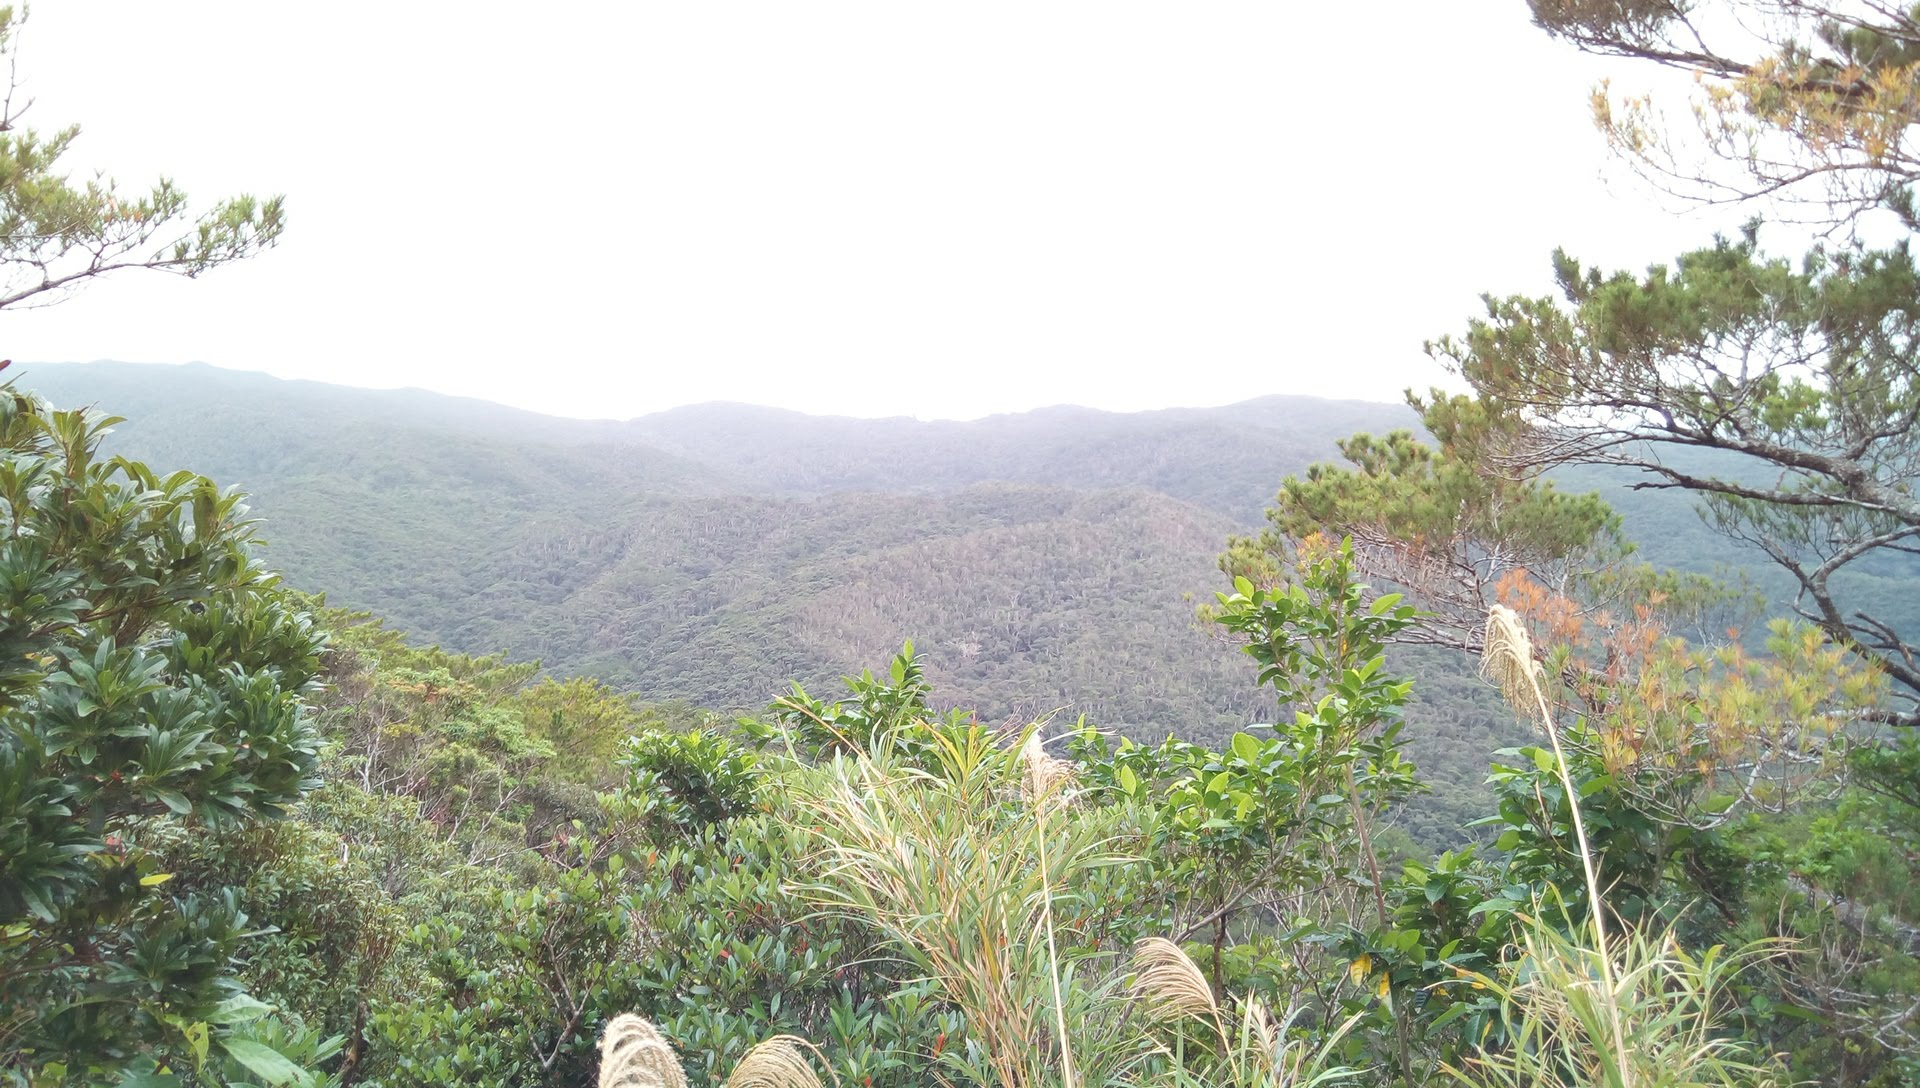 Scenery of Yanbaru tropical forest seen in Kunigami Trail Walk 5